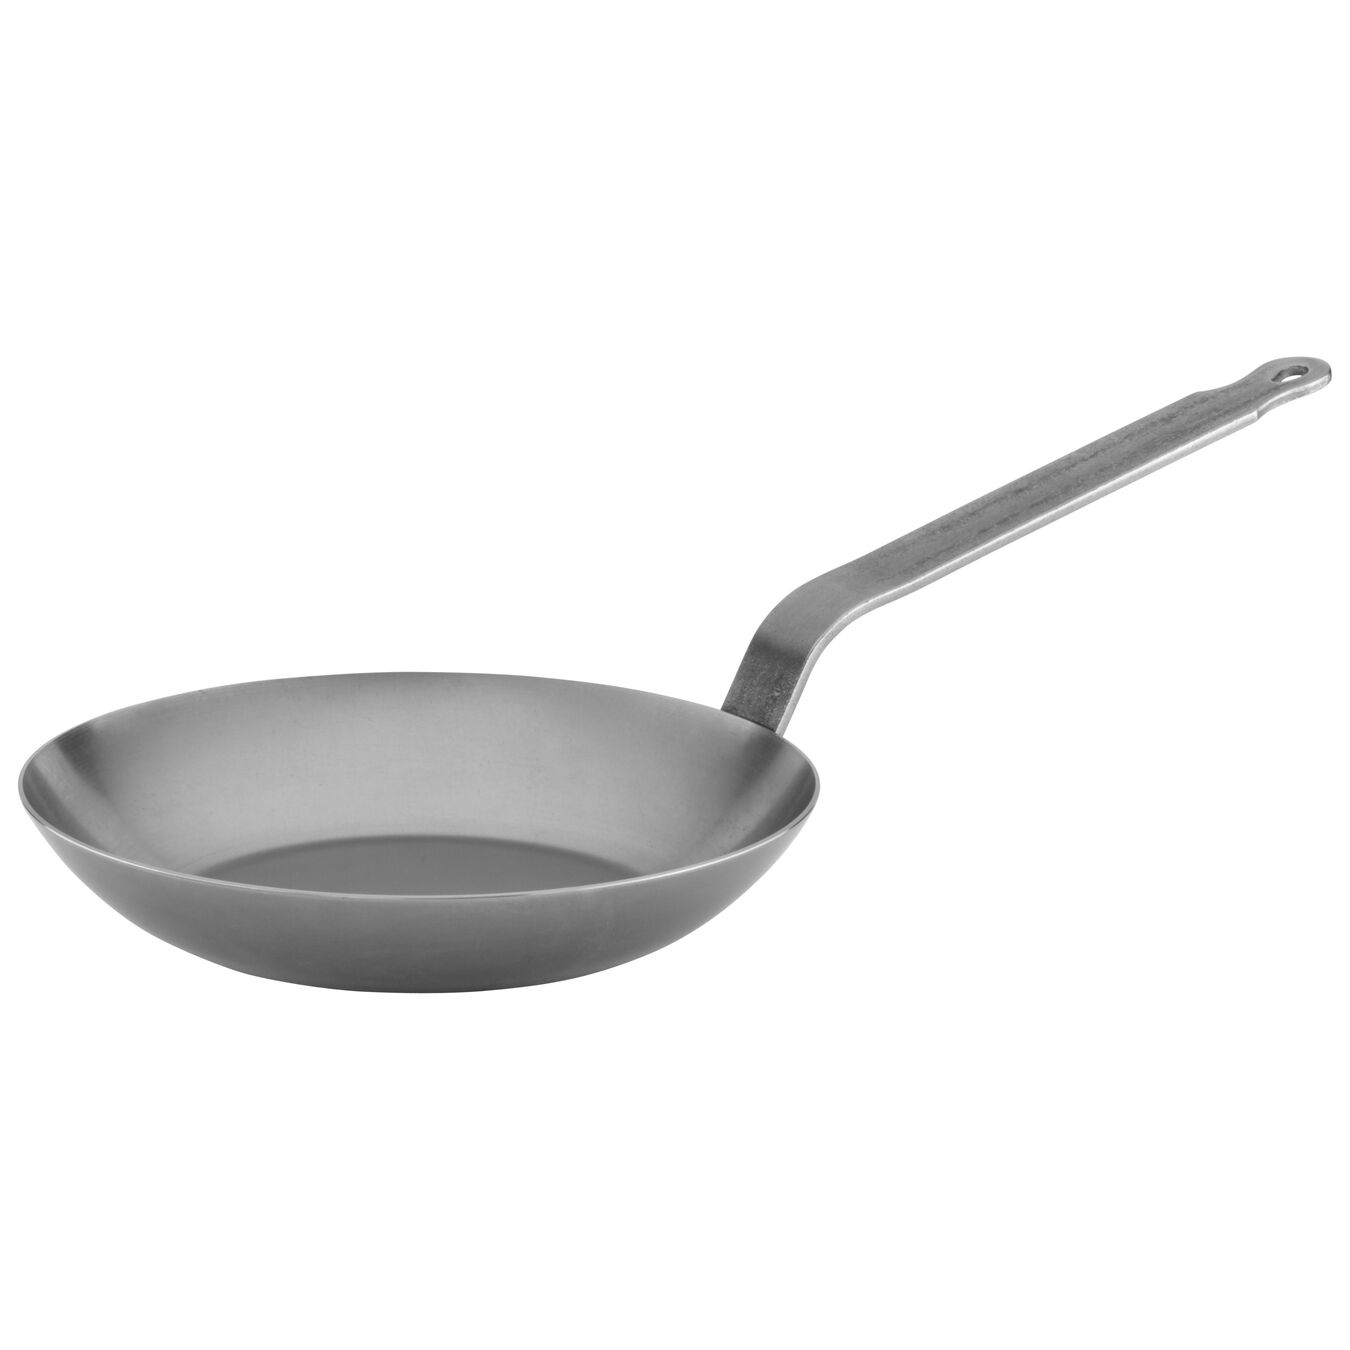 9.5-inch, carbon steel, Frying pan,,large 1